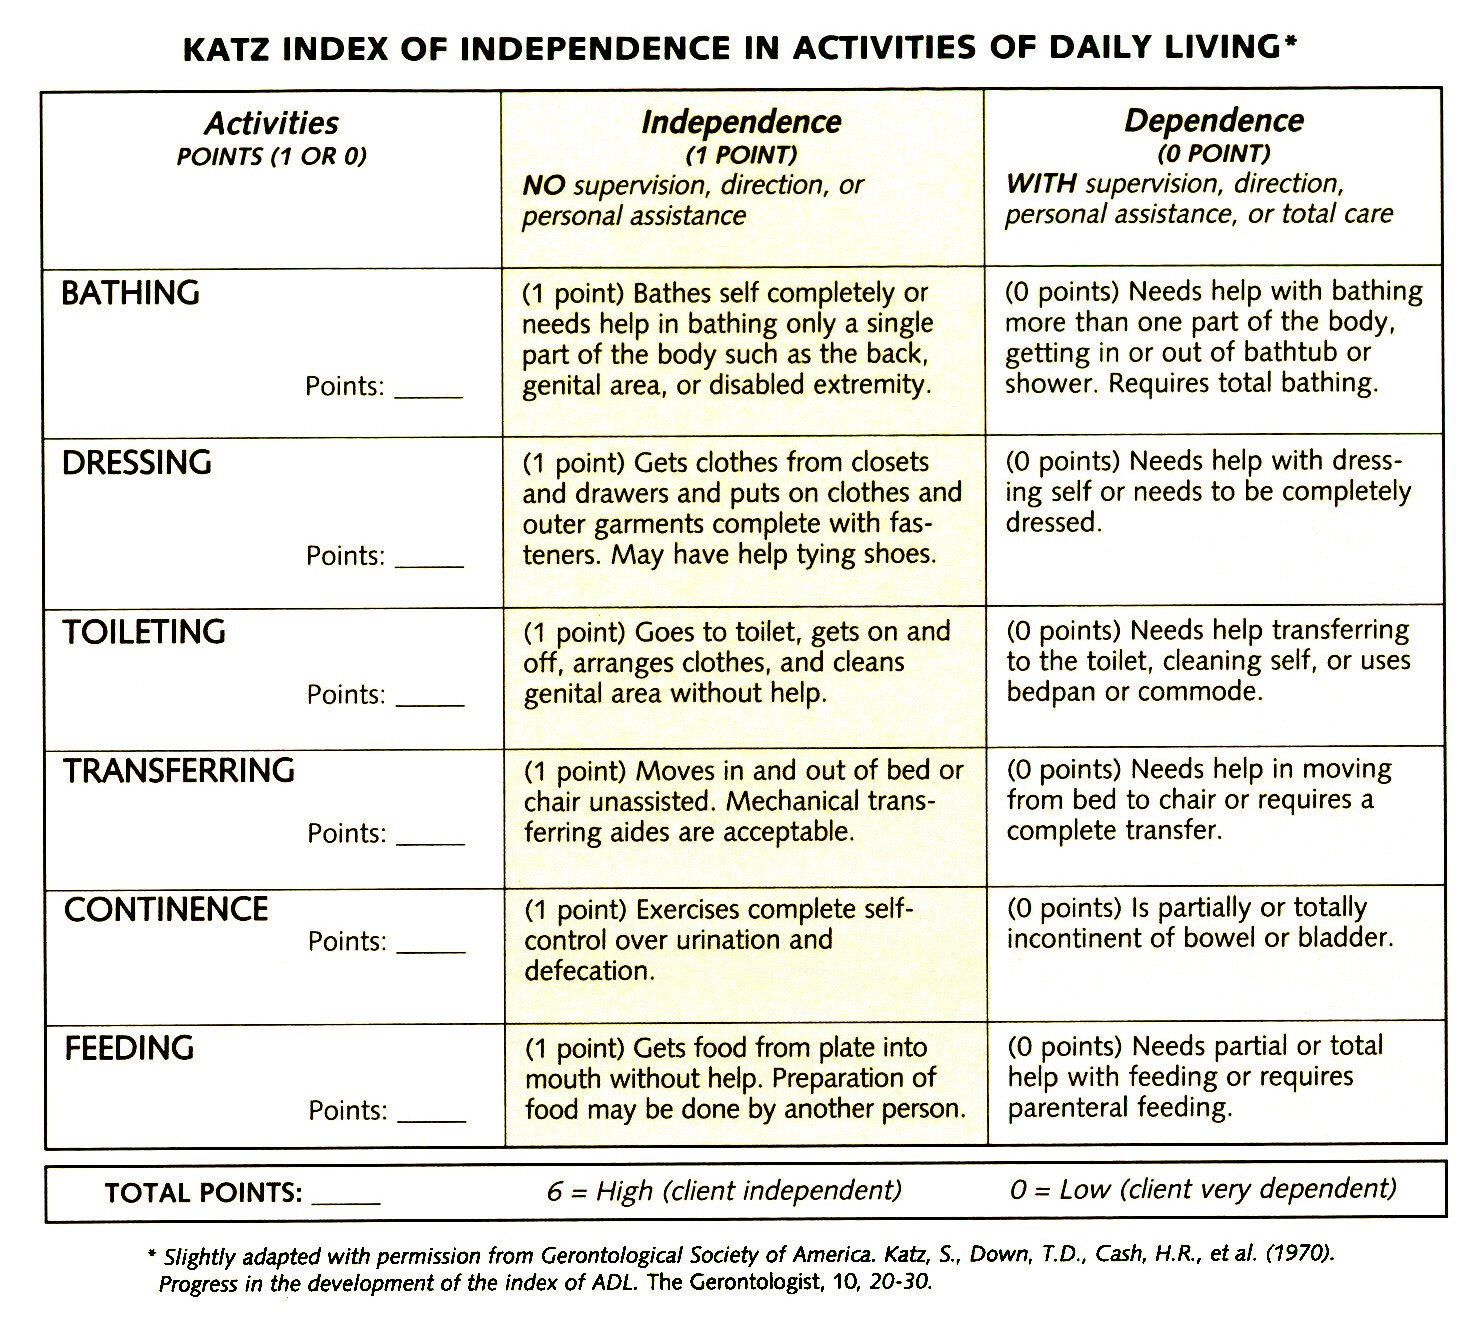 Katz Index Of Independence In Activities Of Daily Living